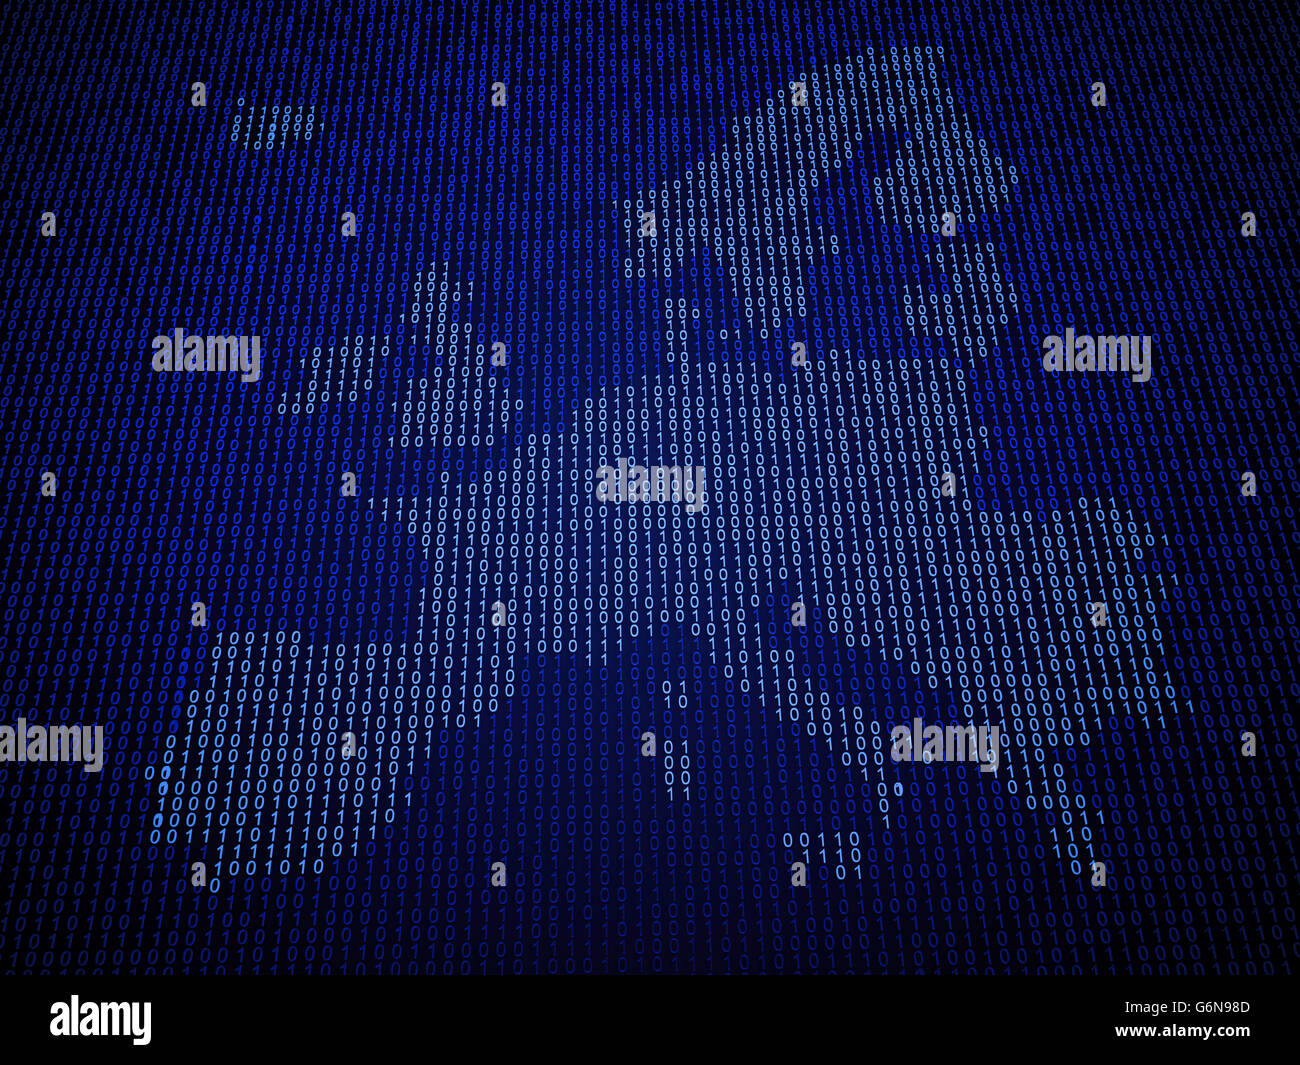 European Union map made out of binary code - Stock Image